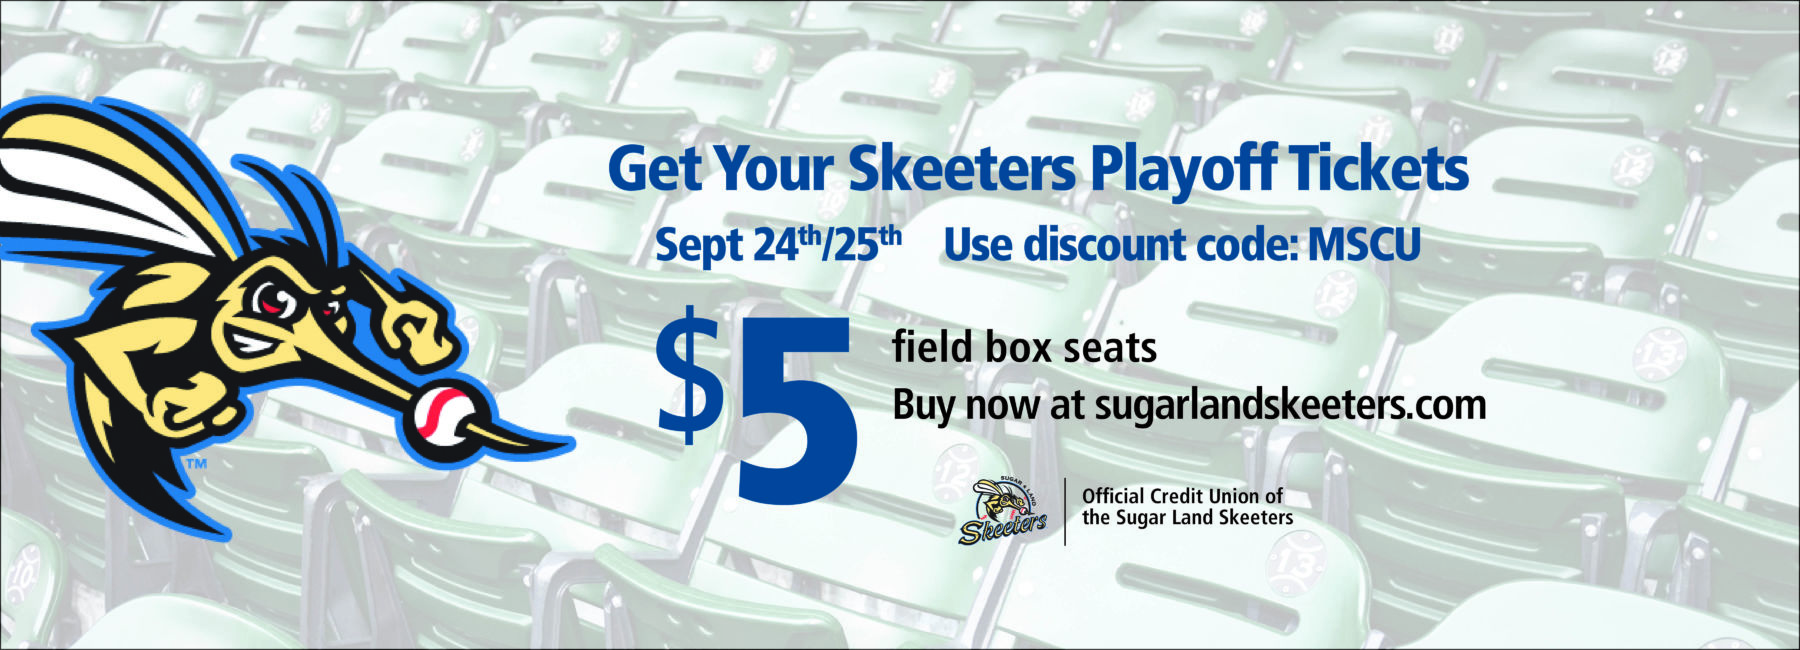 stadium seats with Skeeters playoff ticket information